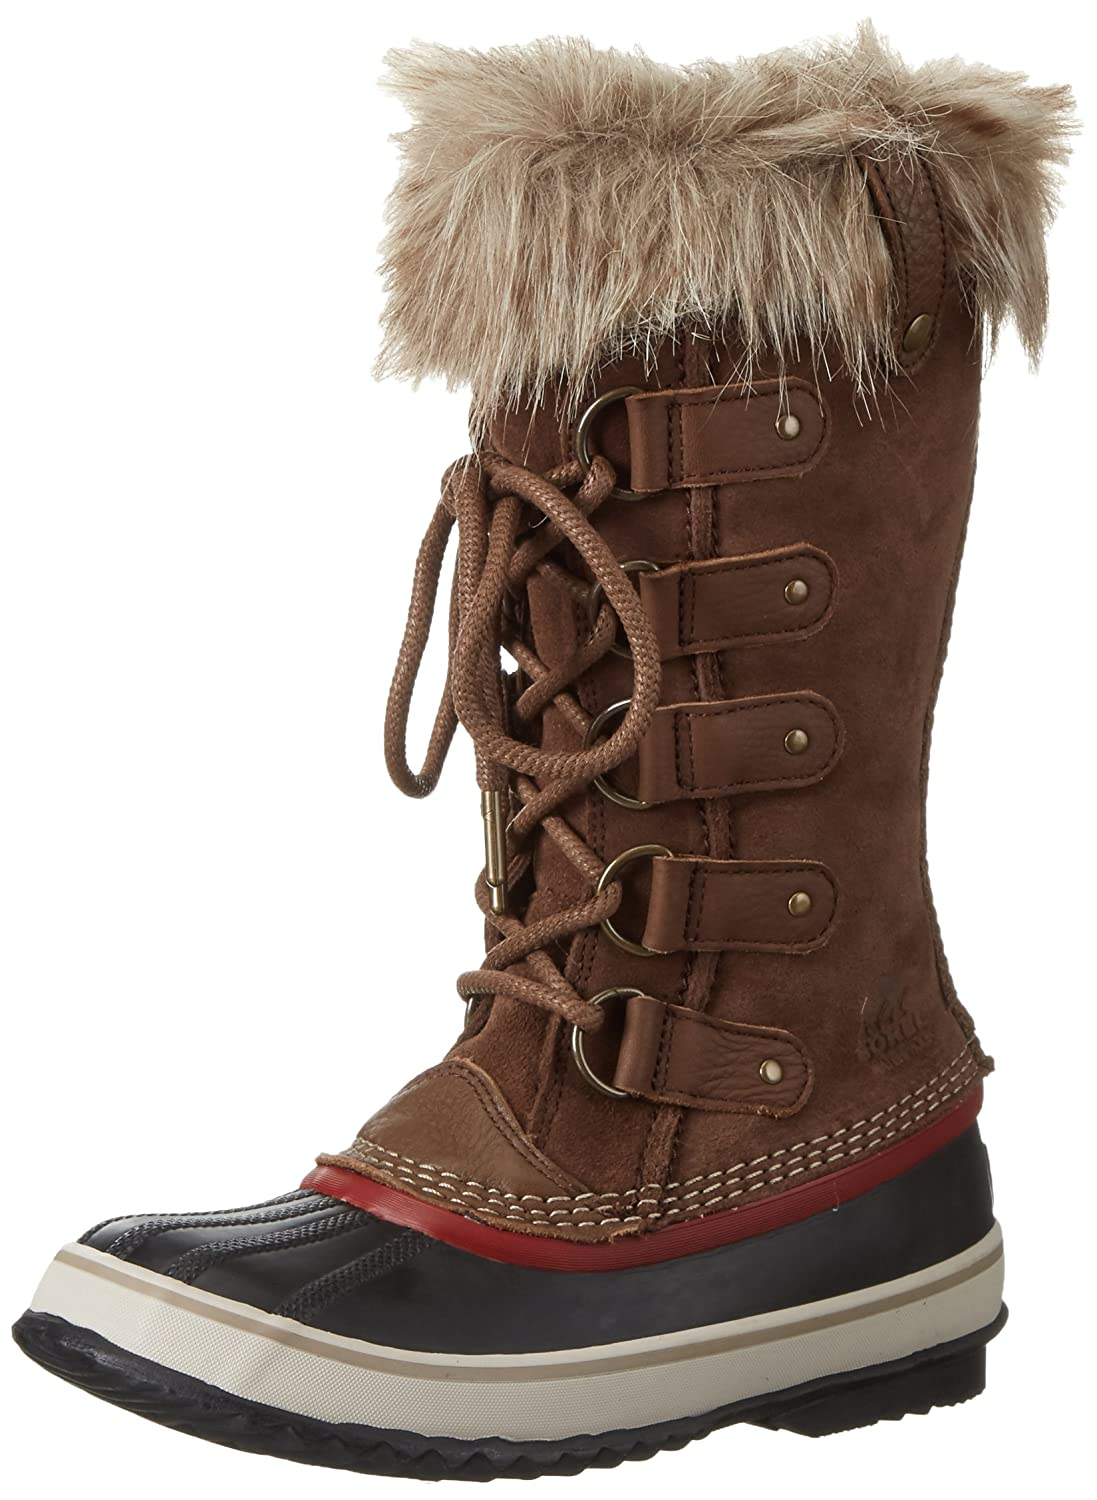 Sorel Joan B079Z8TFJV Red of Arctic Joan II, Bottes de Neige Femme Umber, Red Dahlia 7d75966 - piero.space